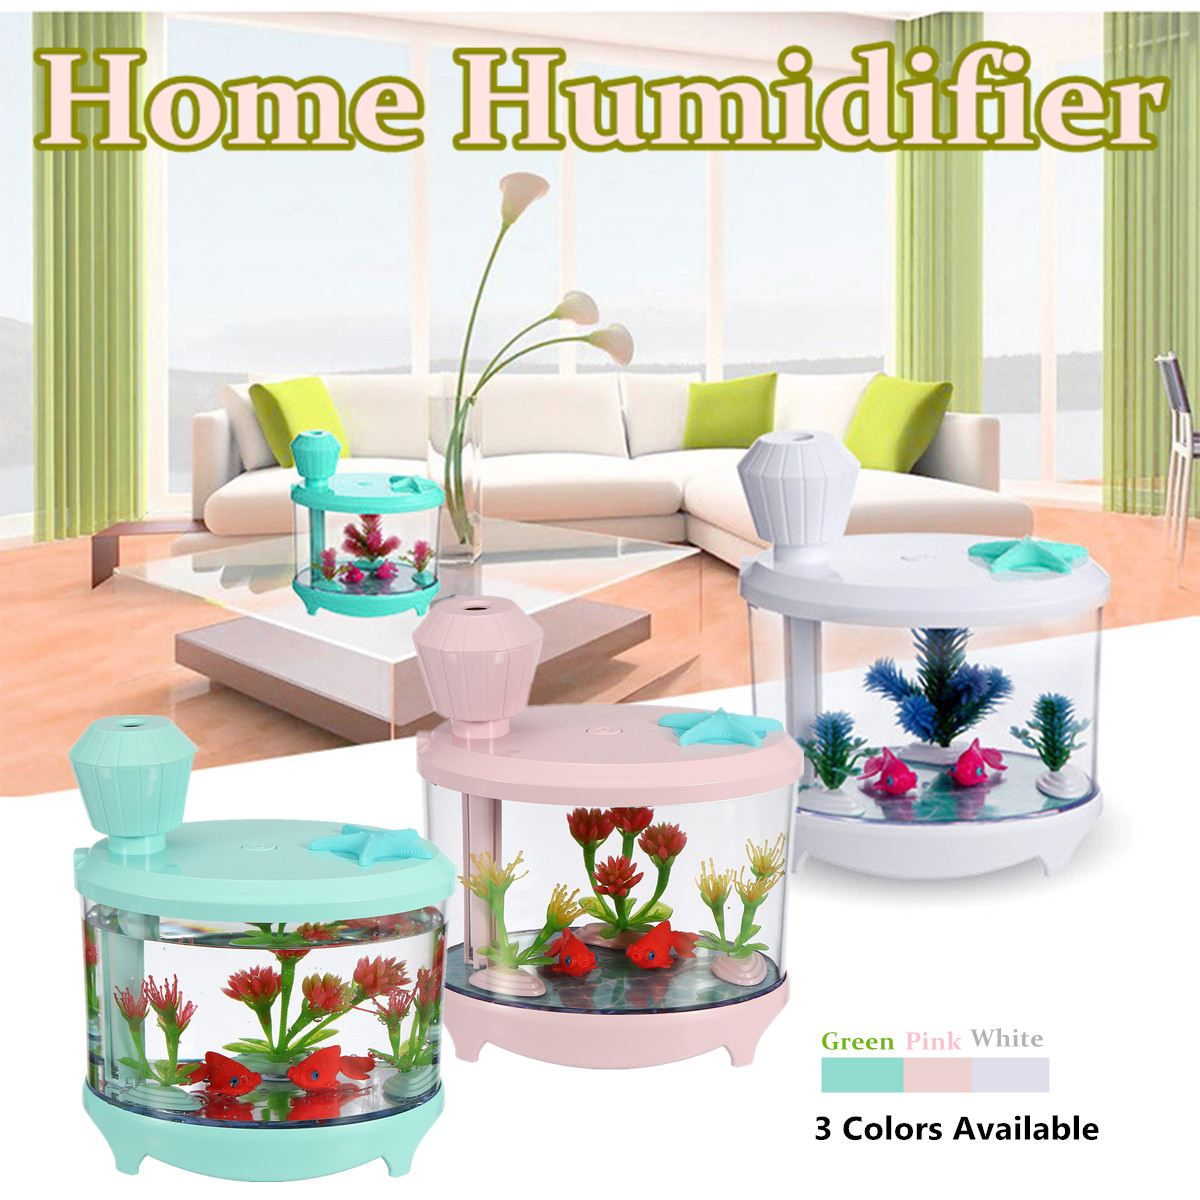 5V USB Fish Tank Shaped Humidifier Air Diffuser Purifier Aroma Mist Maker LED Light for Bedroom Study Office Living Room Colors